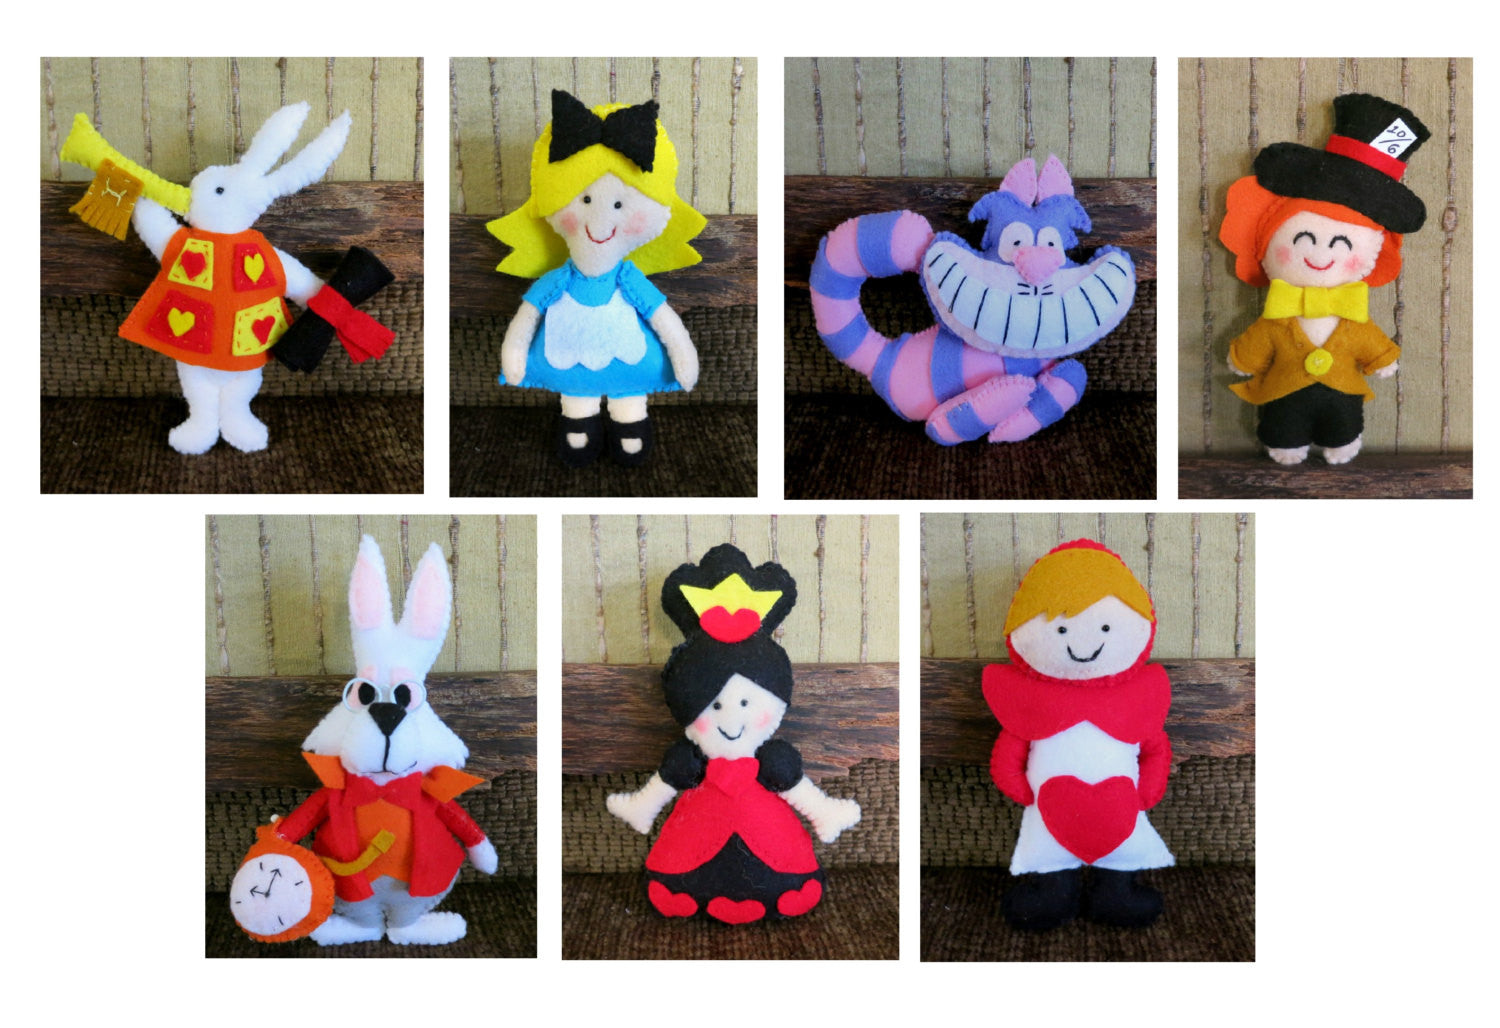 Baby-Mobile-Alice-in-Wonderland-Nchanted-Gifts